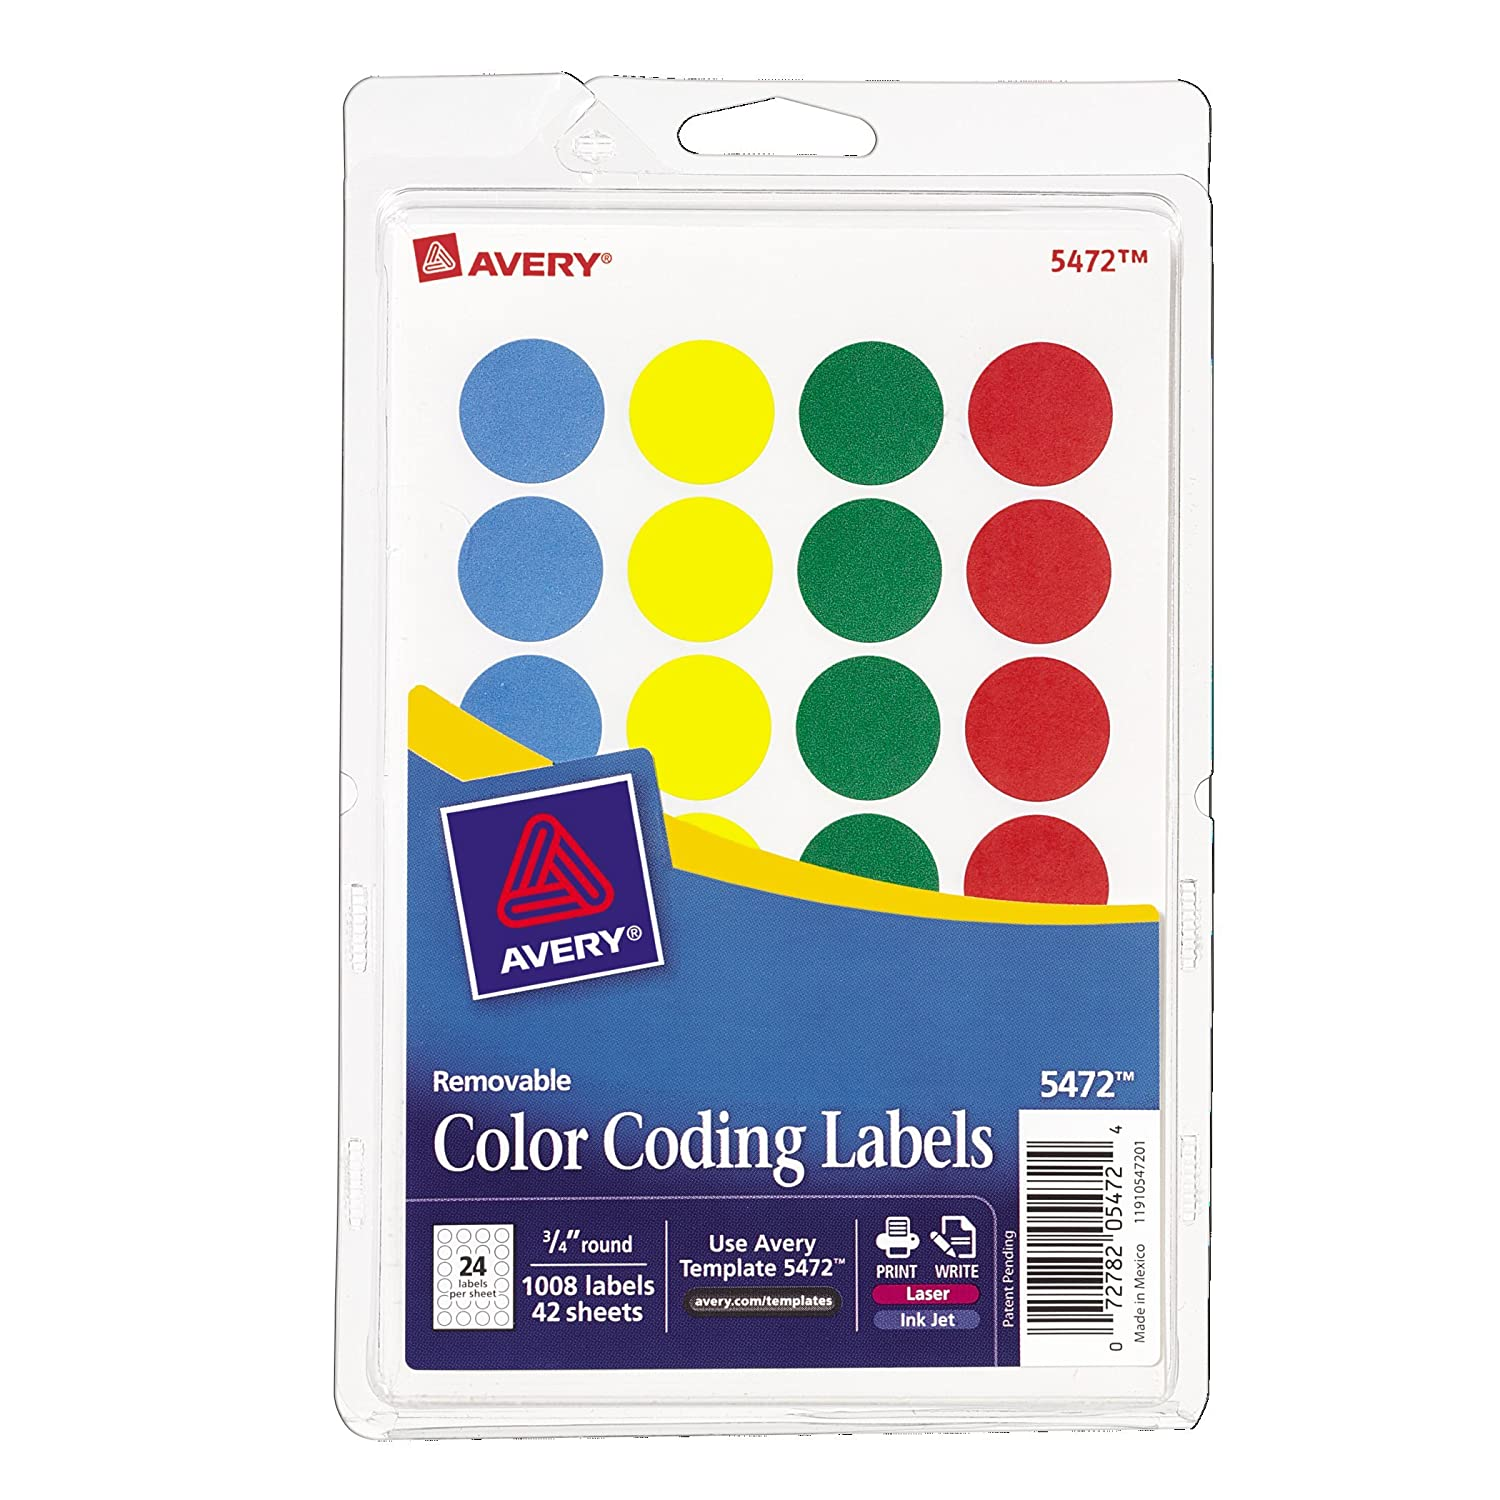 Amazon.com : Avery Removable Print or Write Color Coding Labels, Round,  0.75 Inches, Pack of 1008 (5472) : Add On Items : Office Products